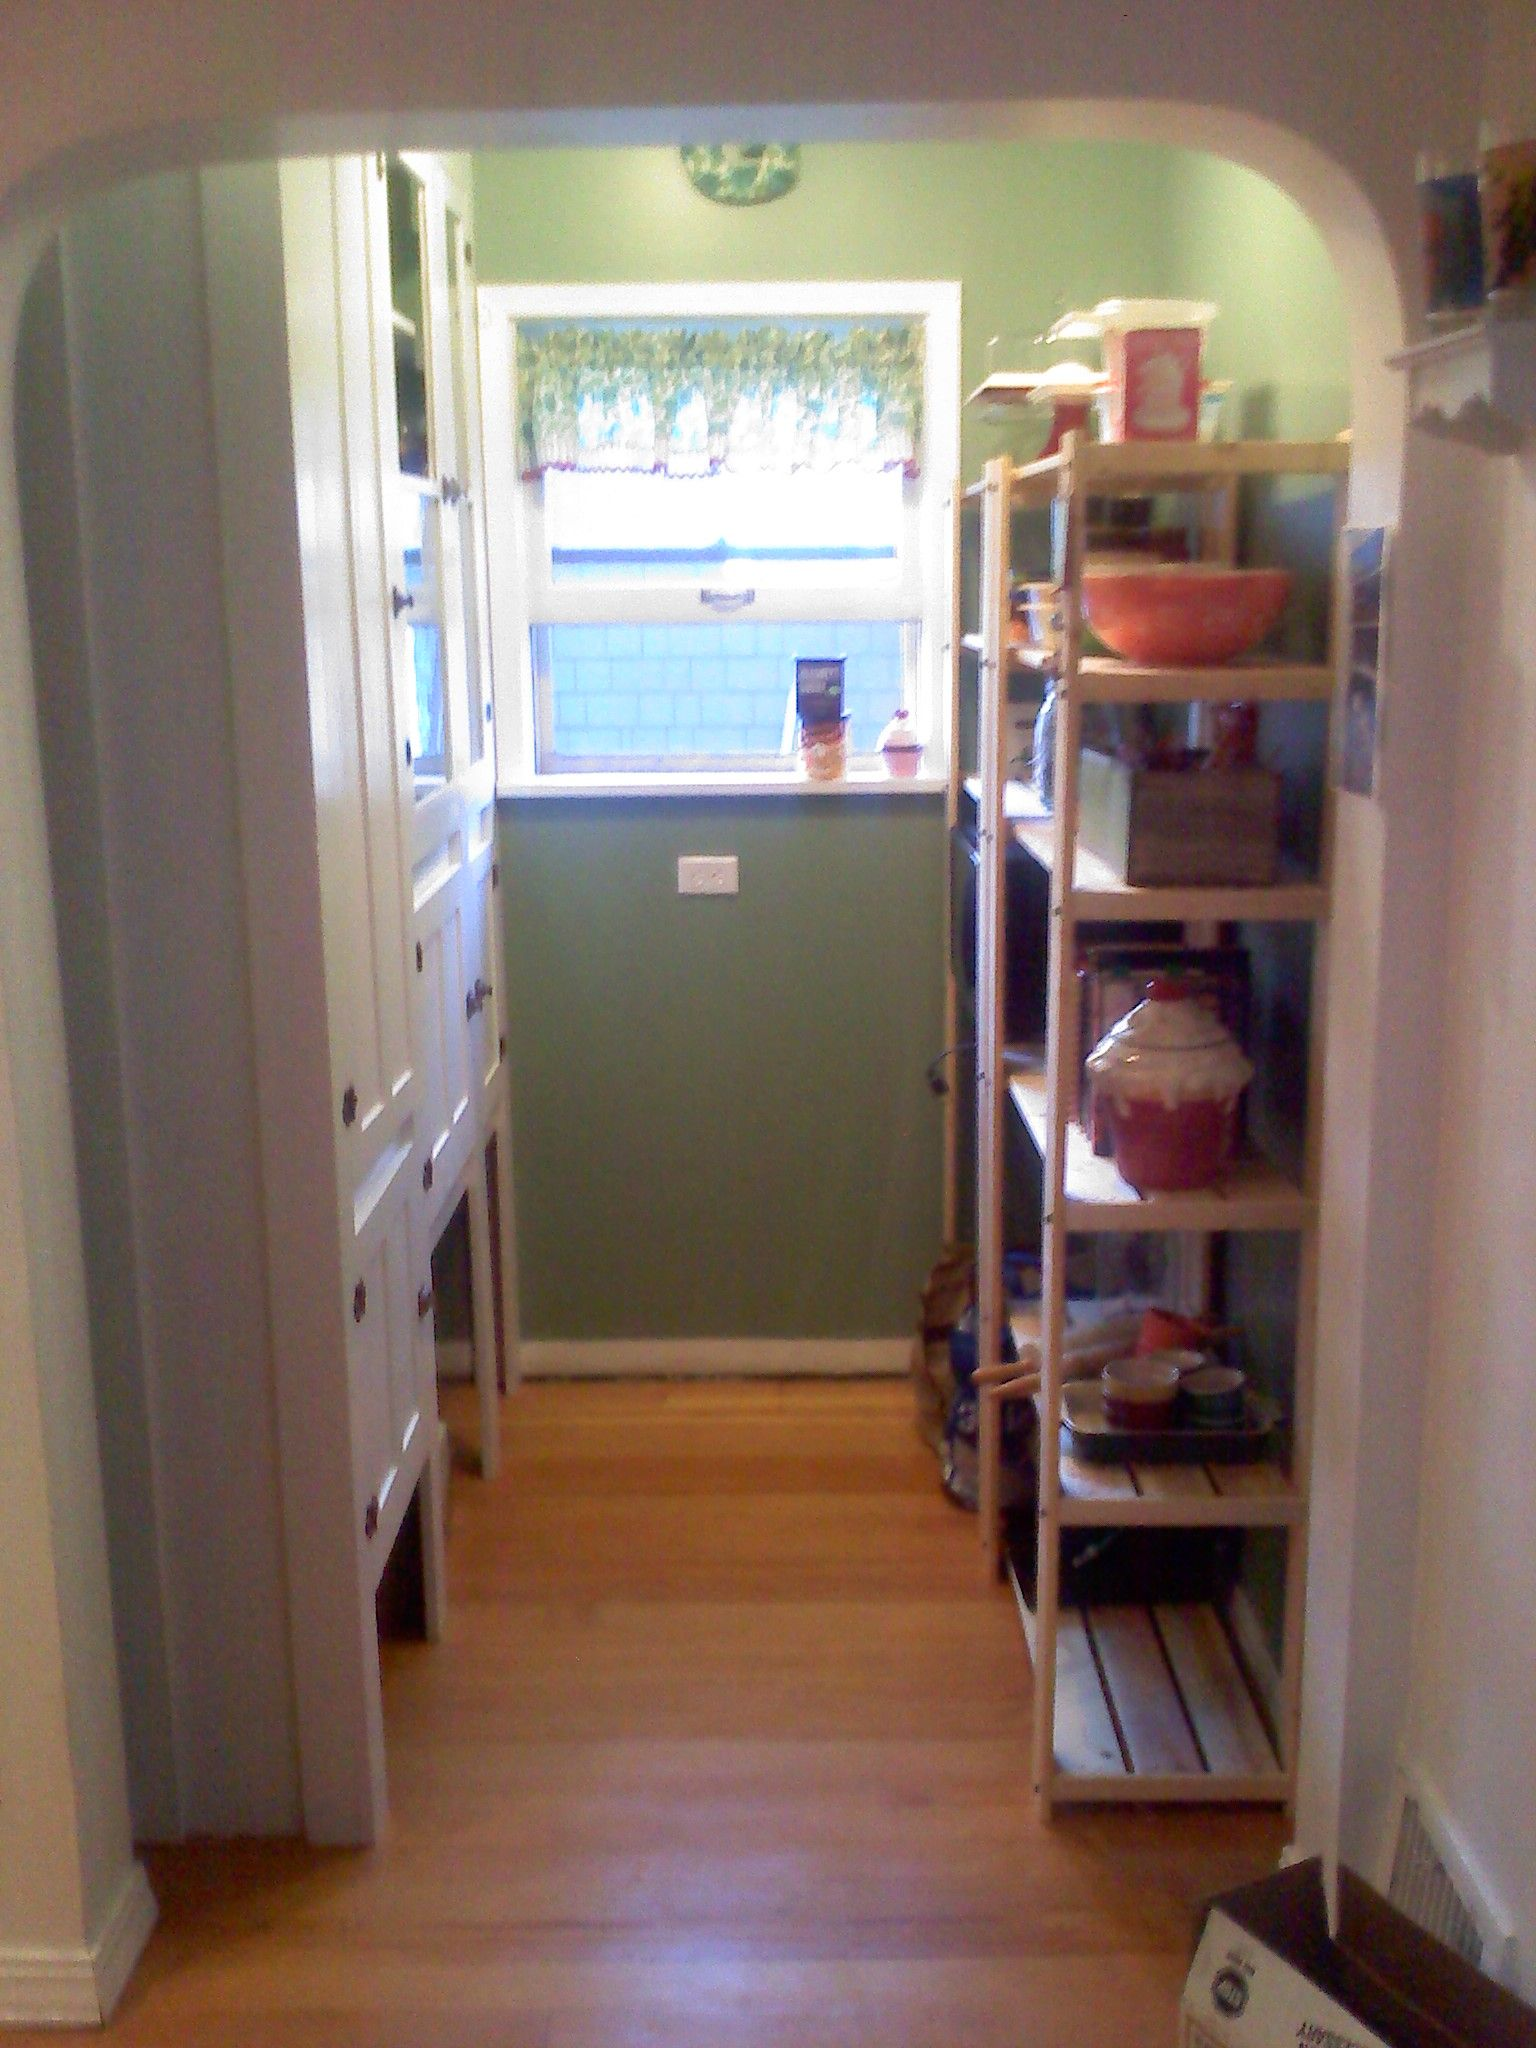 651d638785f6e12331ef2746ee040a9c Pantry Ideas Kitchen Amp Nook on kitchen pantry designs, kitchen pantry with small floor plans, kitchen slide out pantry shelves, kitchen with no pantry,